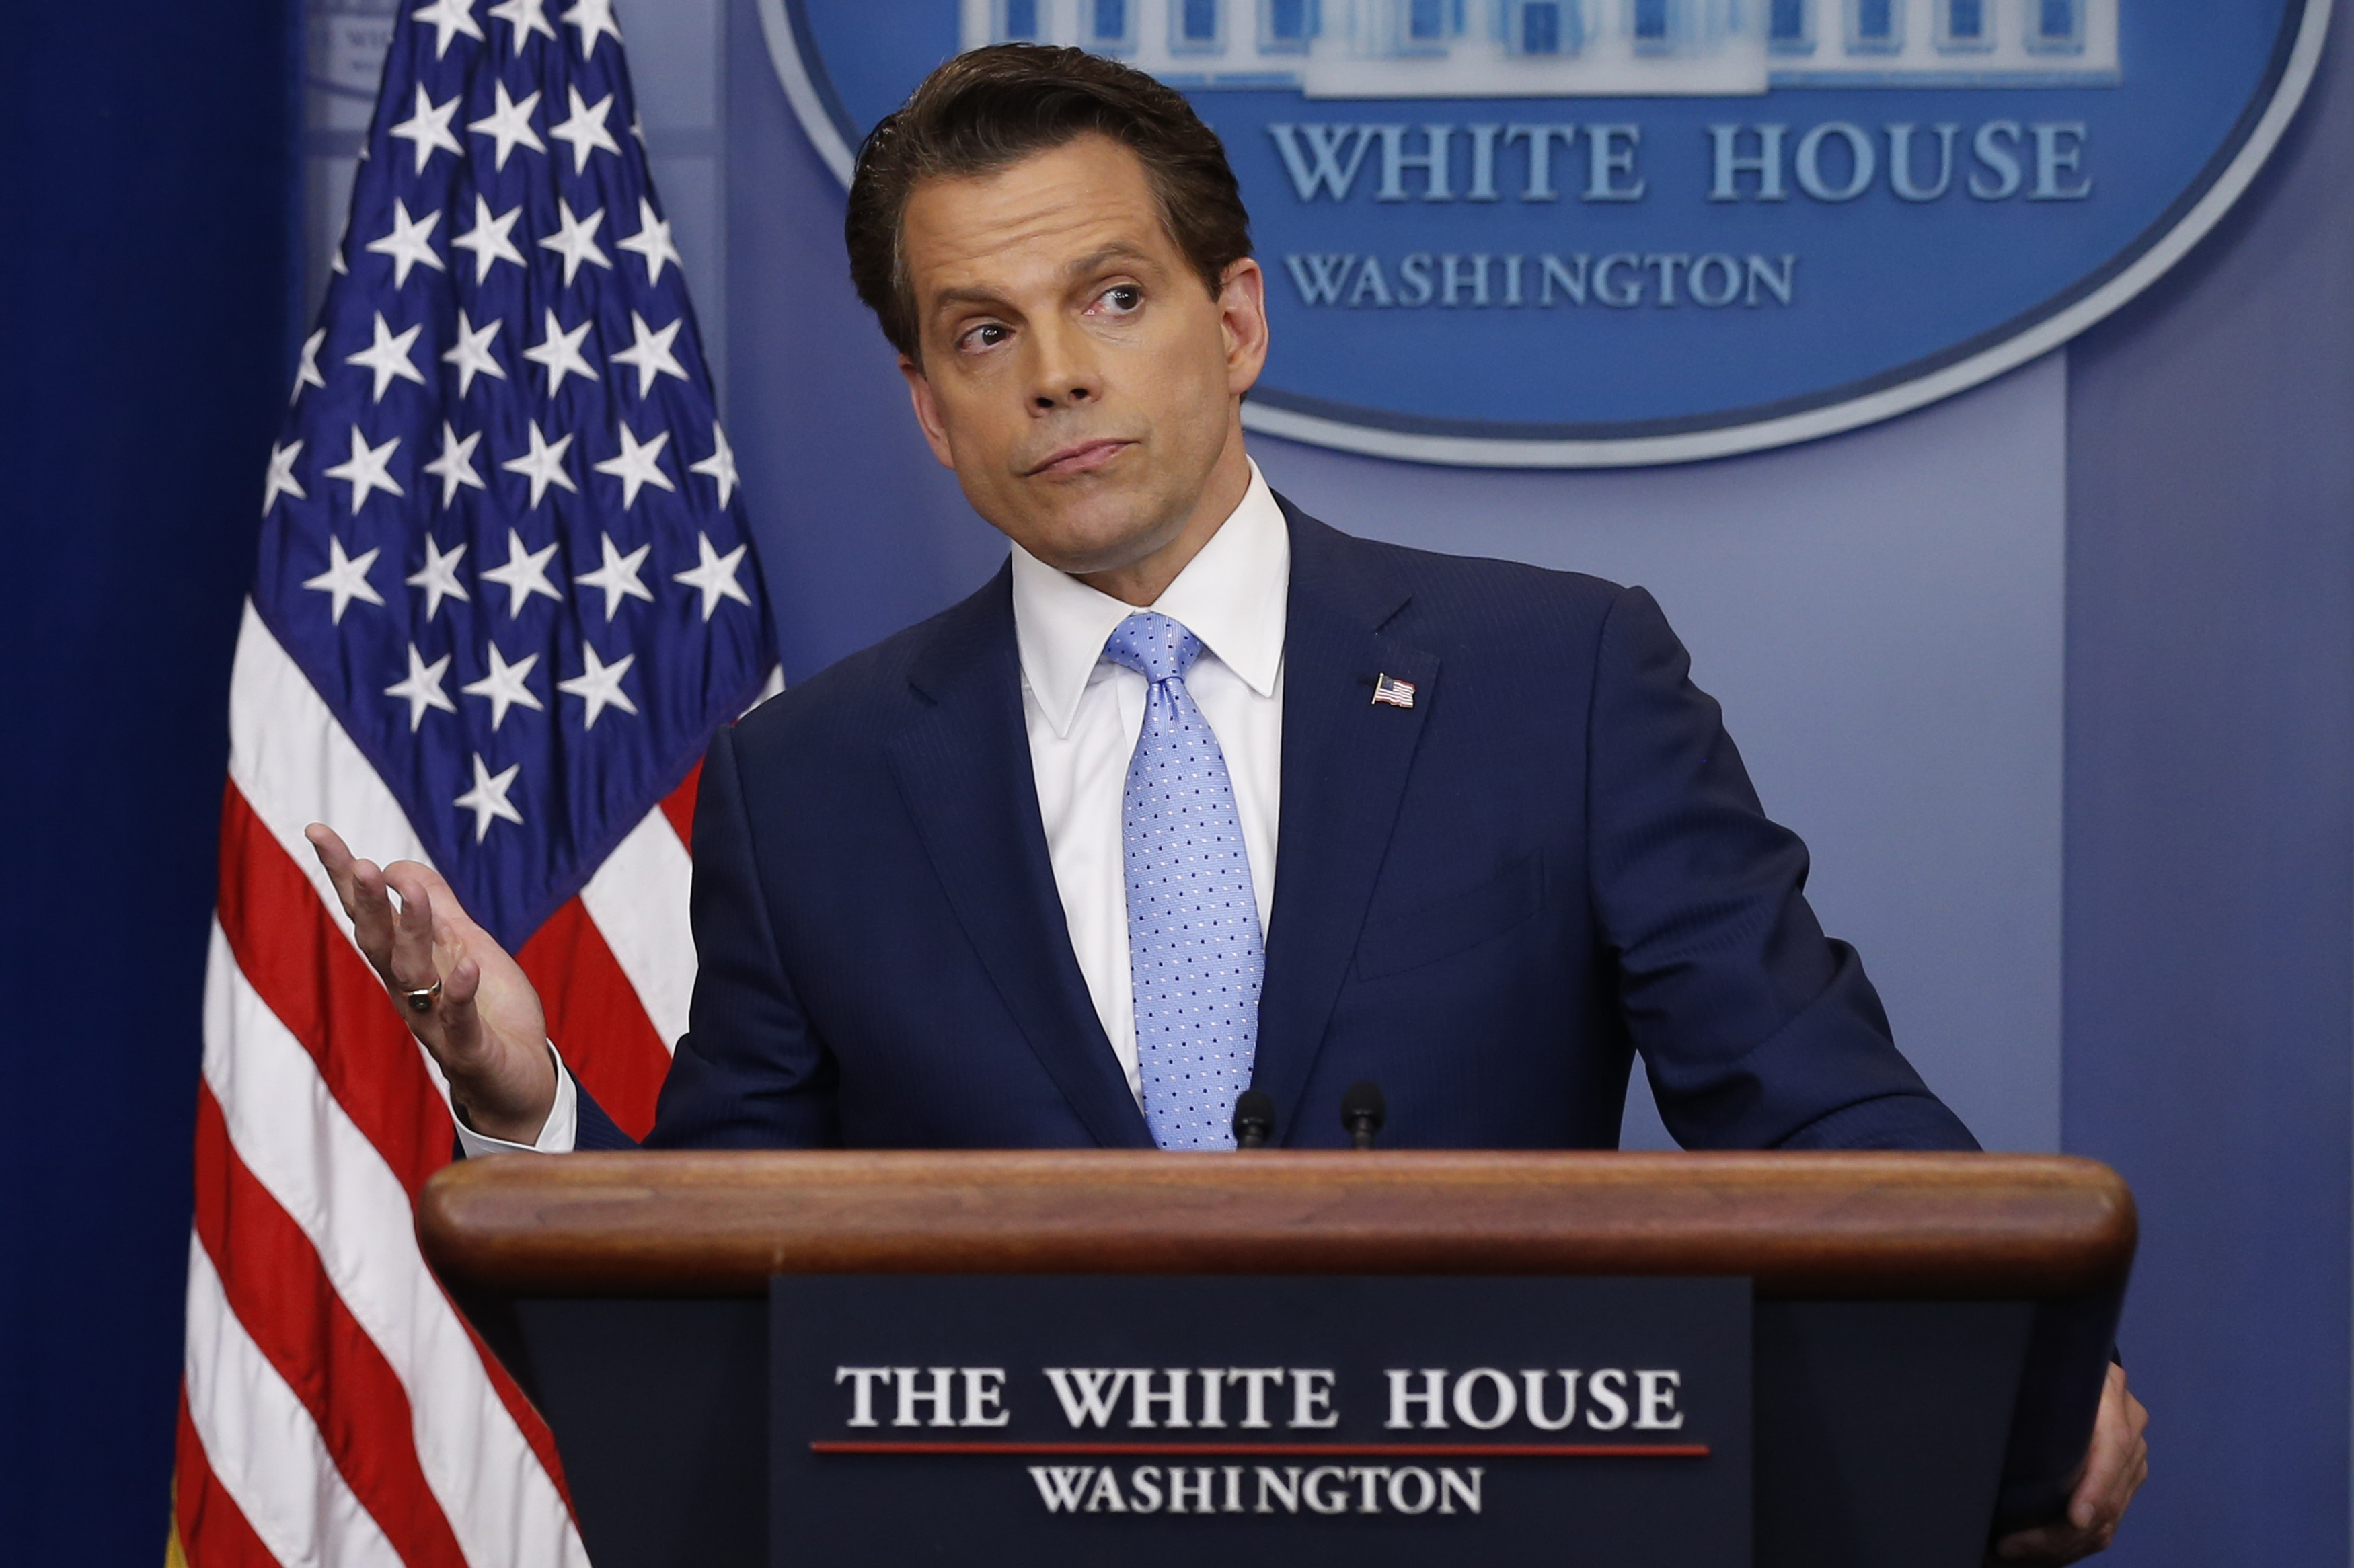 New White House Communications Director Anthony Scaramucci takes questions at the daily briefing at the White House in Washington, U.S., July 21, 2017. REUTERS/Jonathan Ernst